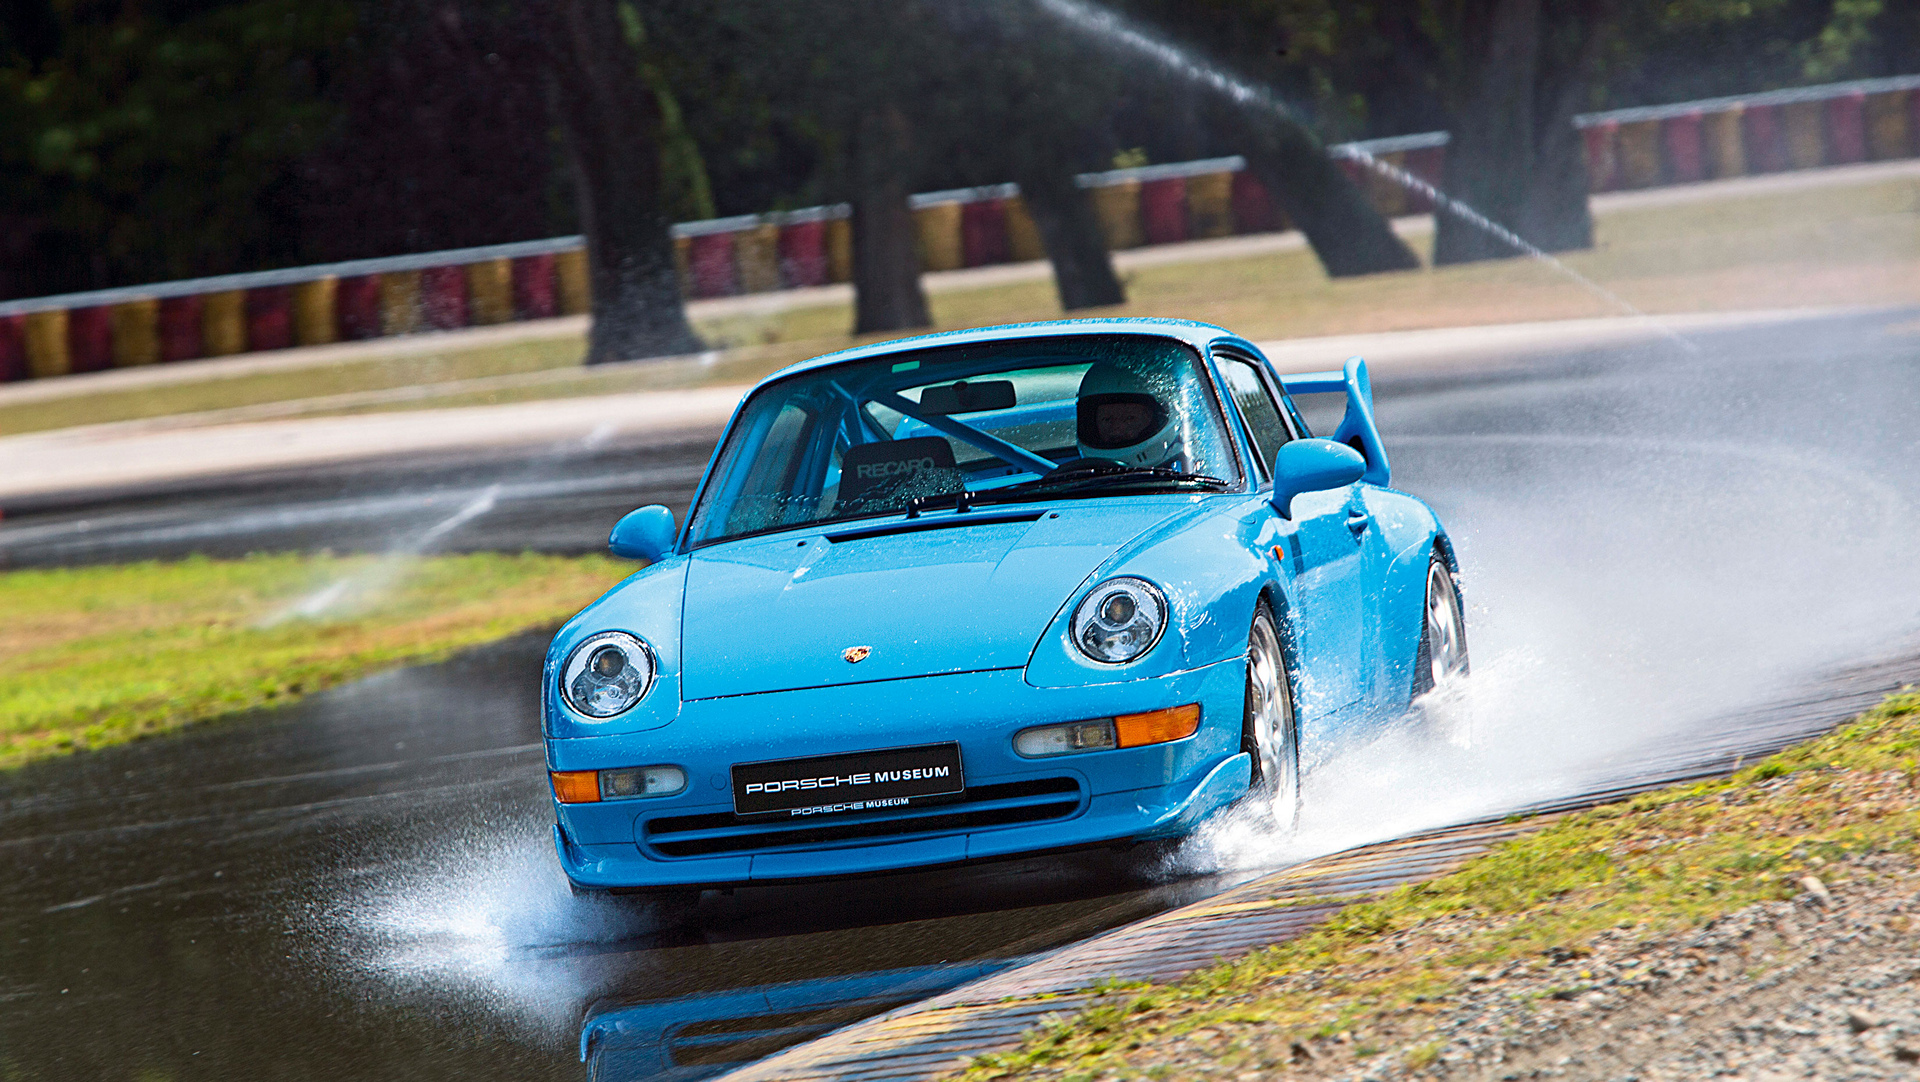 993 RS, tyre testing, Piedmont region of Italy © Dr. Ing. h.c. F. Porsche AG